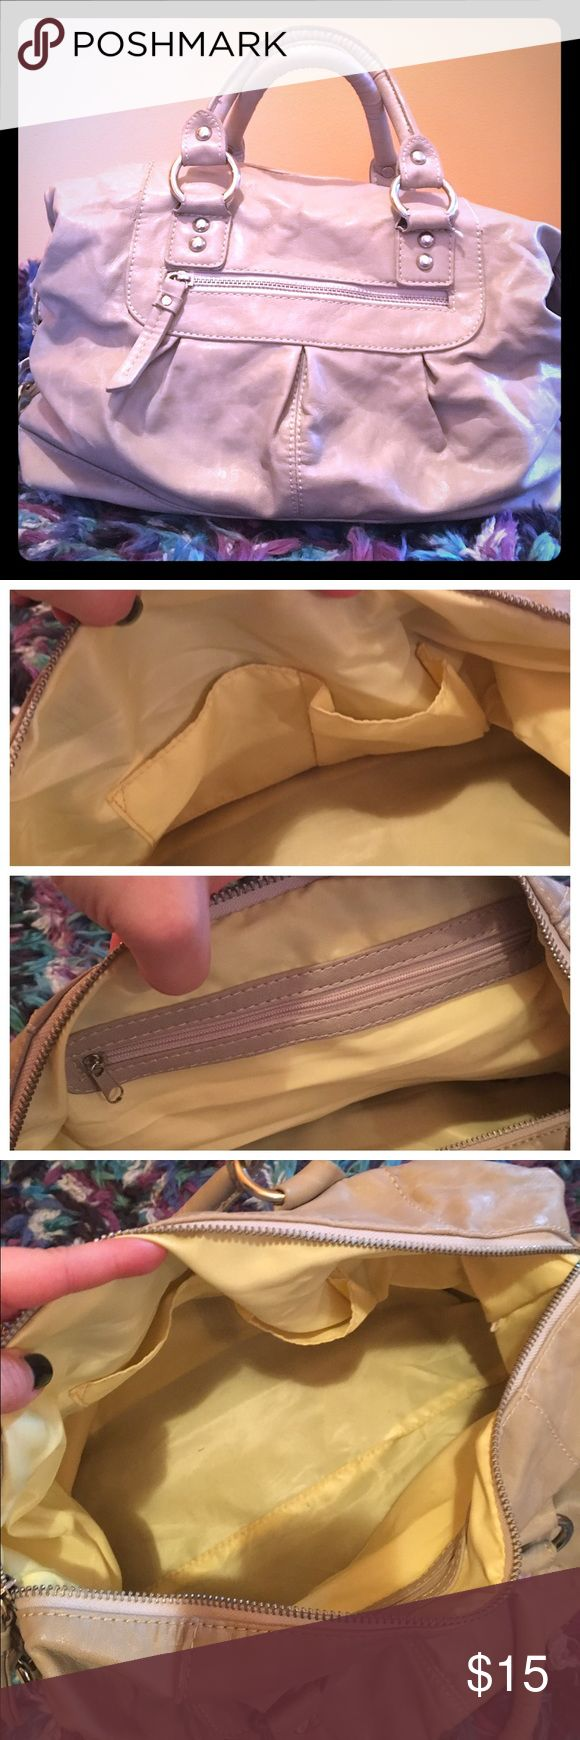 Francesca's Mini Purse 👜 Cute beige bag, that can carry it all. Outside zipper just big enough to put your keys. Inside has zipper pouch and 2 pouches for phone. Small pen stain on interior shown in last picture. Francesca's Collections Bags Hobos